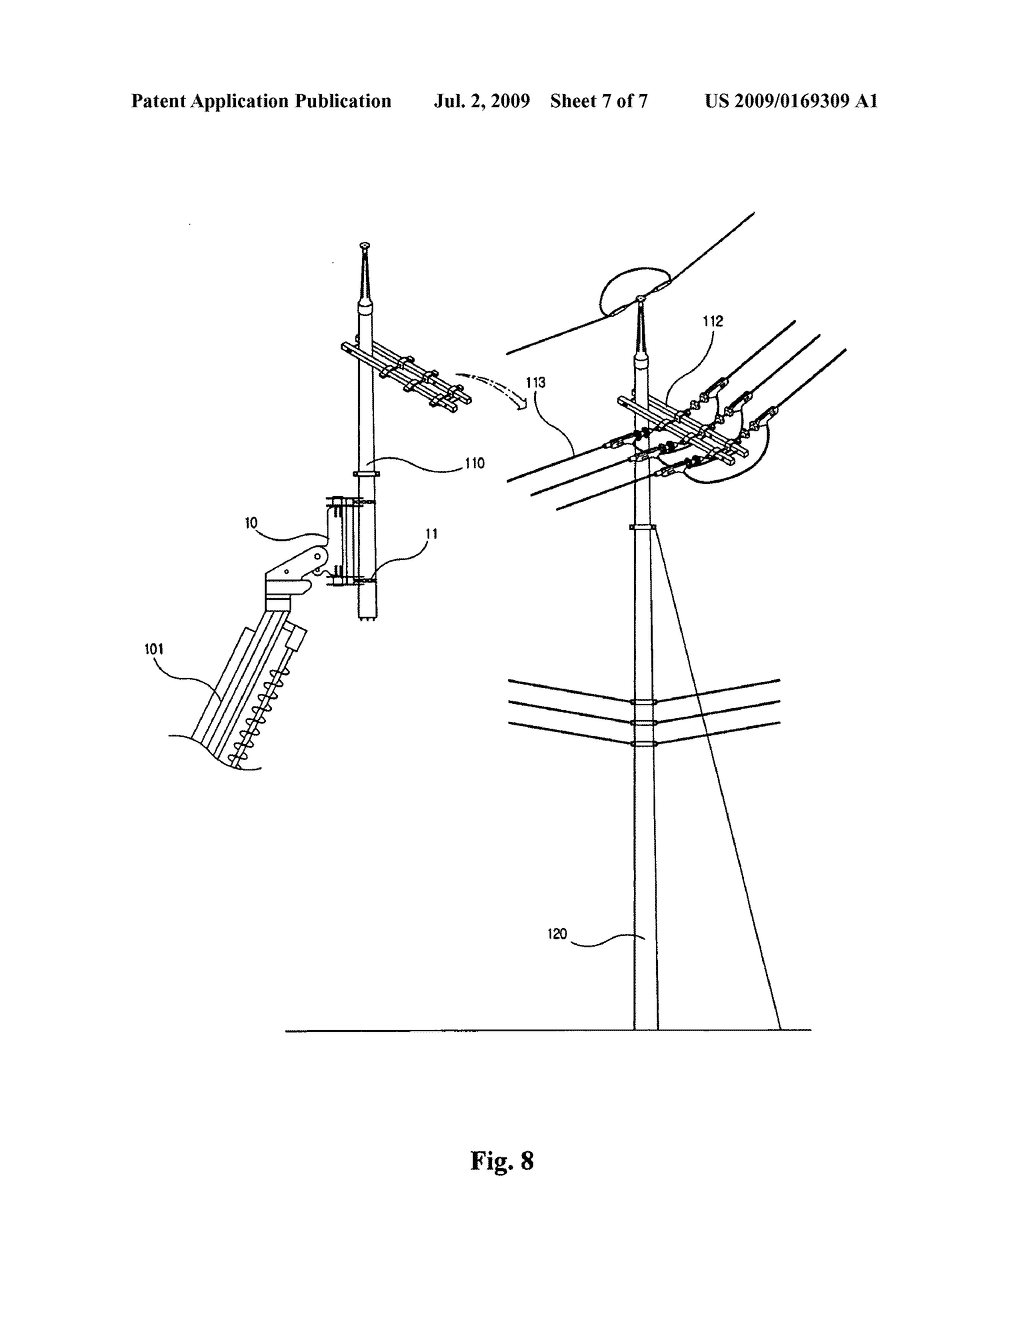 hight resolution of method for replacing concrete utility pole without interrupting power supply by adopting pole clamp and pole crusher diagram schematic and image 08